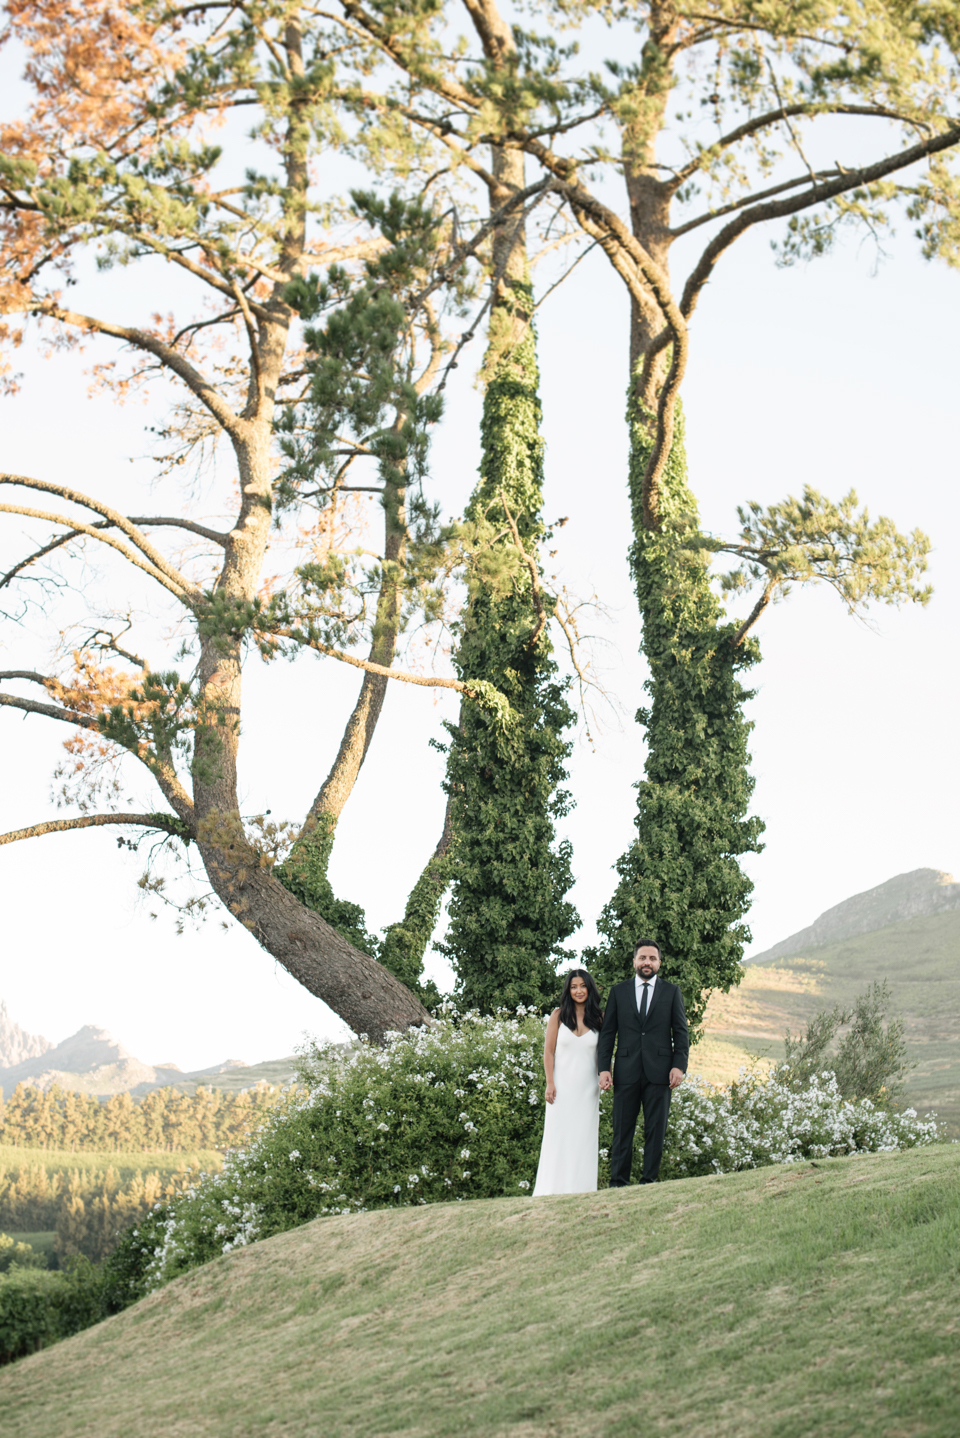 Grace and Alfonso wedding Clouds Estate Stellenbosch South Africa shot by dna photographers 769.jpg